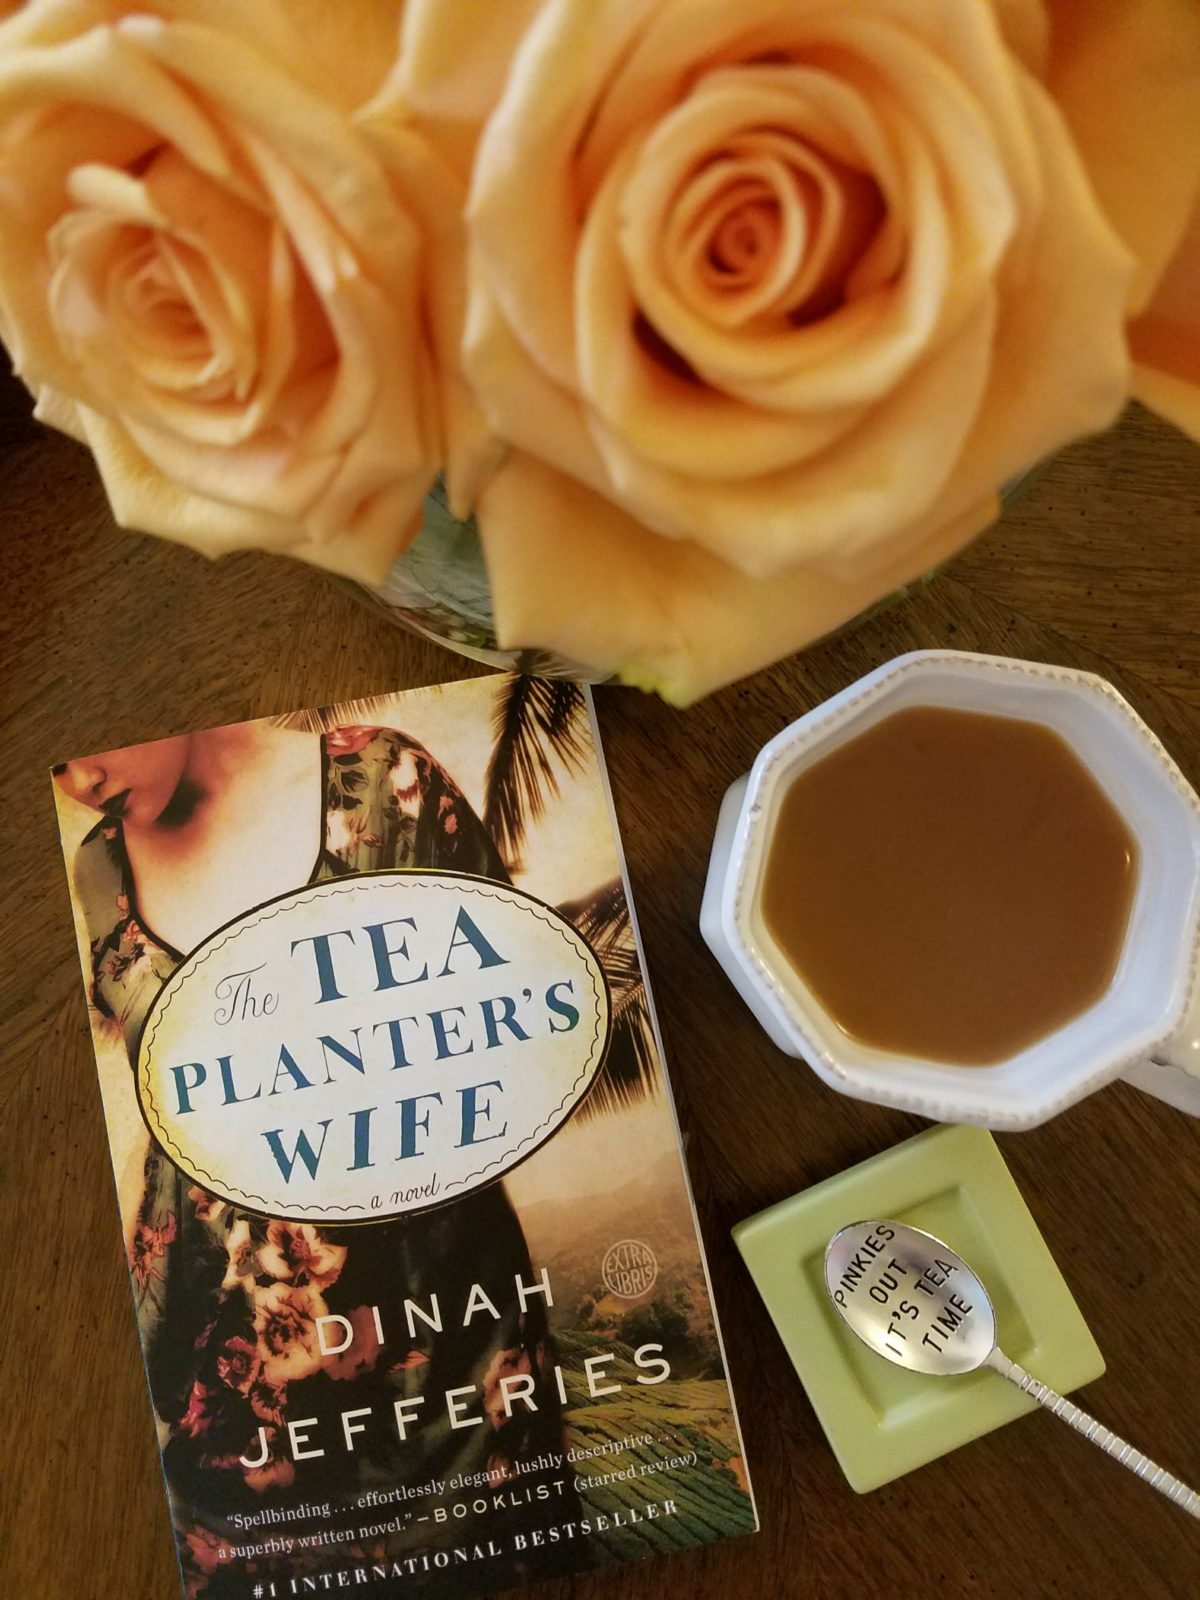 The Tea Planter's Wife — You'll want to drink alot of tea!